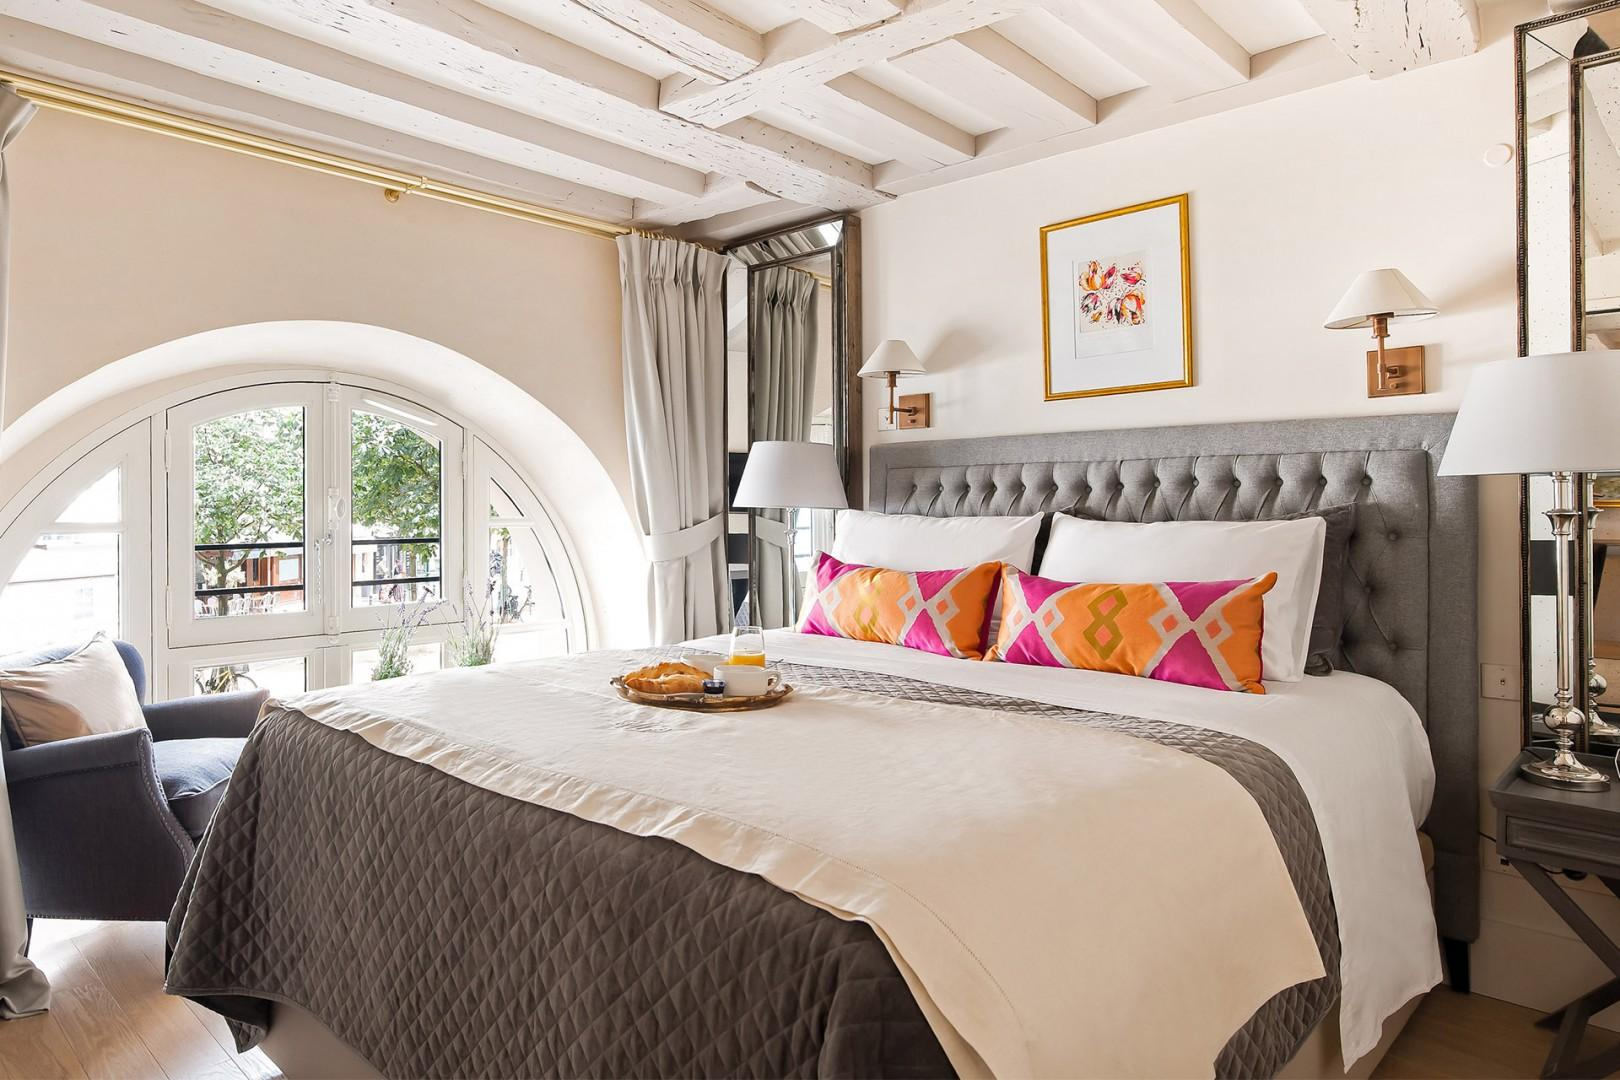 Enjoy the sumptuous bed and tasteful décor in bedroom 1.